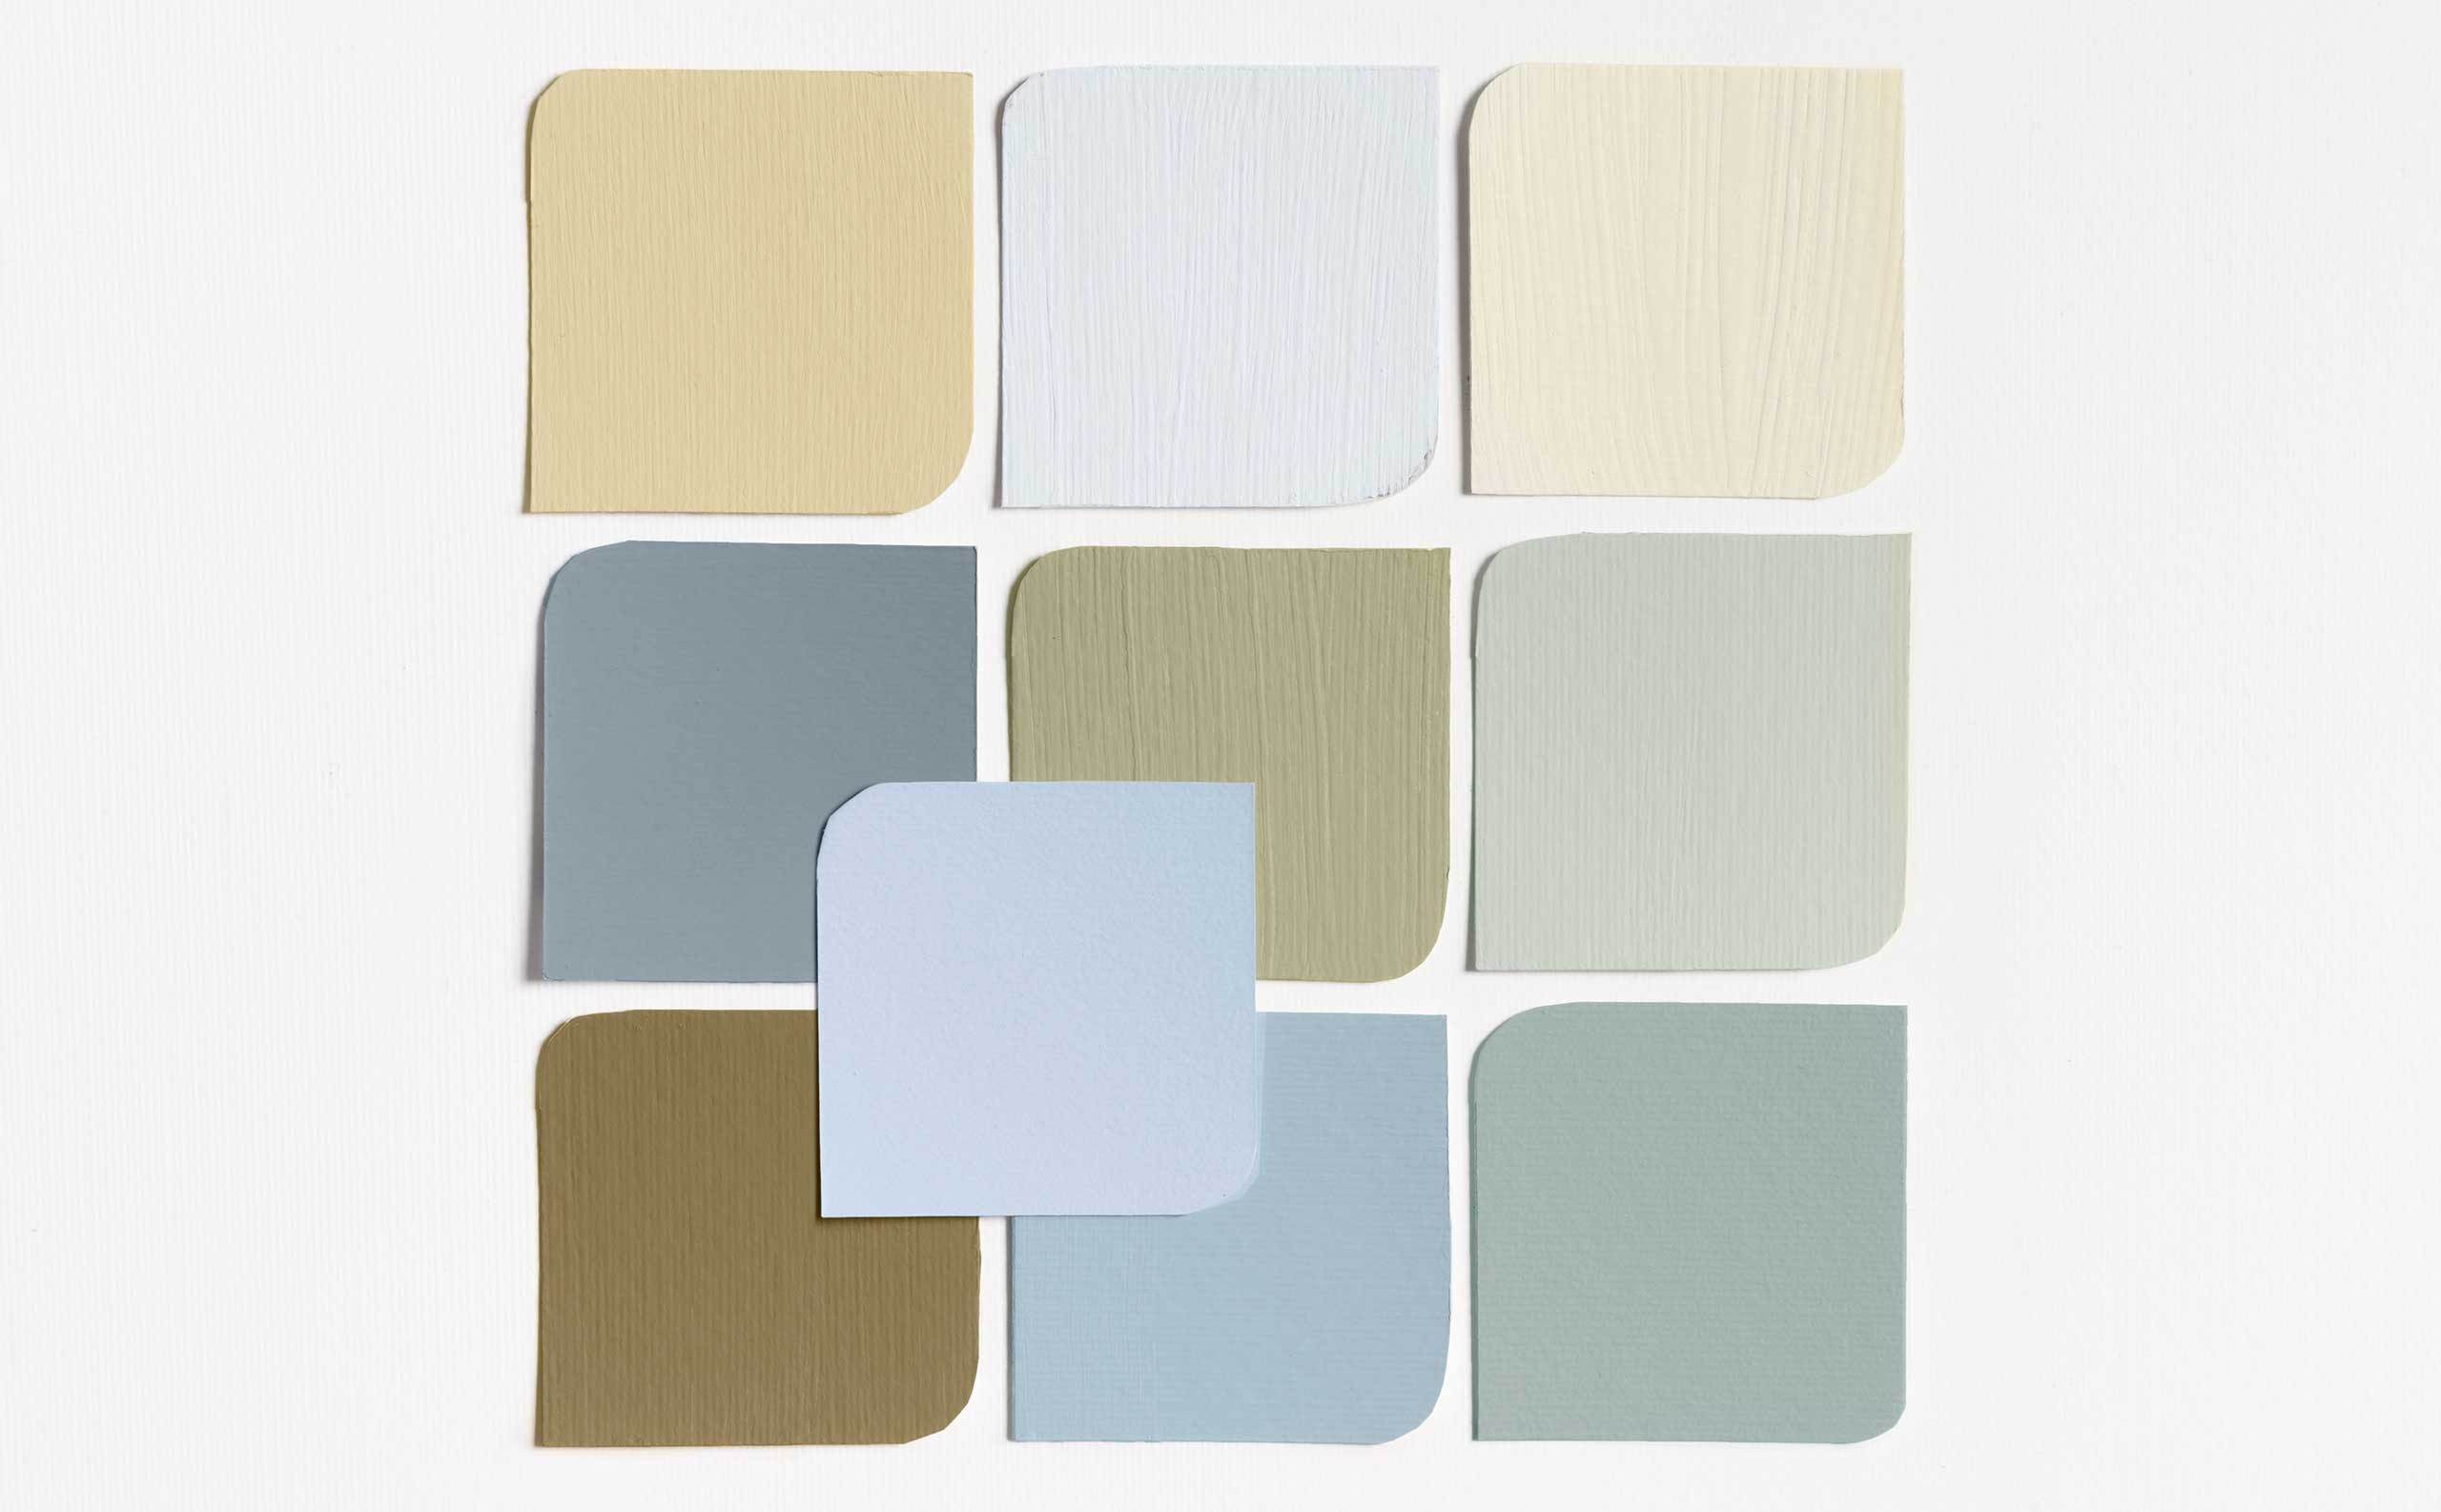 _Dulux-Colour-Futures-Colour-of-the-Year-2022-The-Greenhouse-Colours-Inspiration-Global-205P